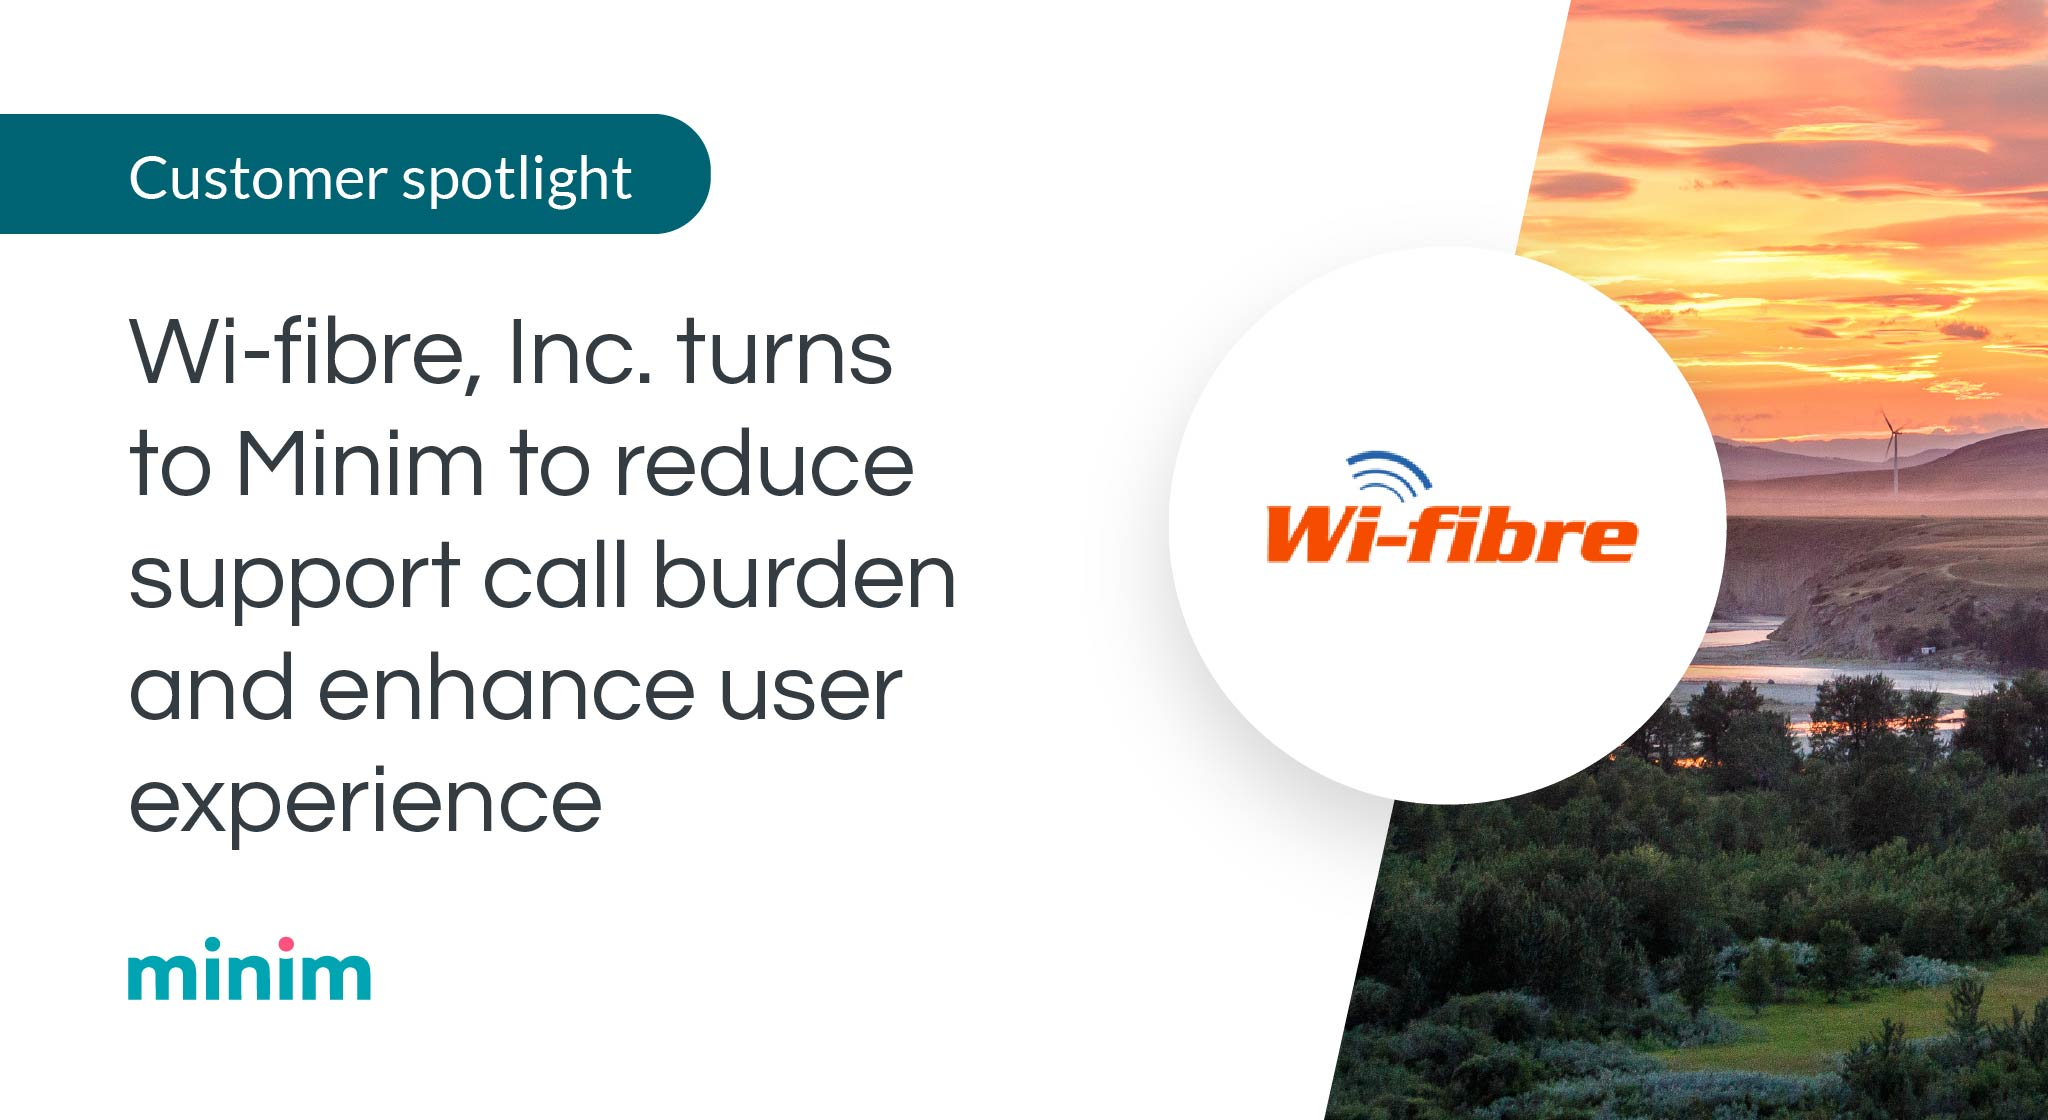 Managed WiFi network improvements: Why Wi-Fibre chose Minim